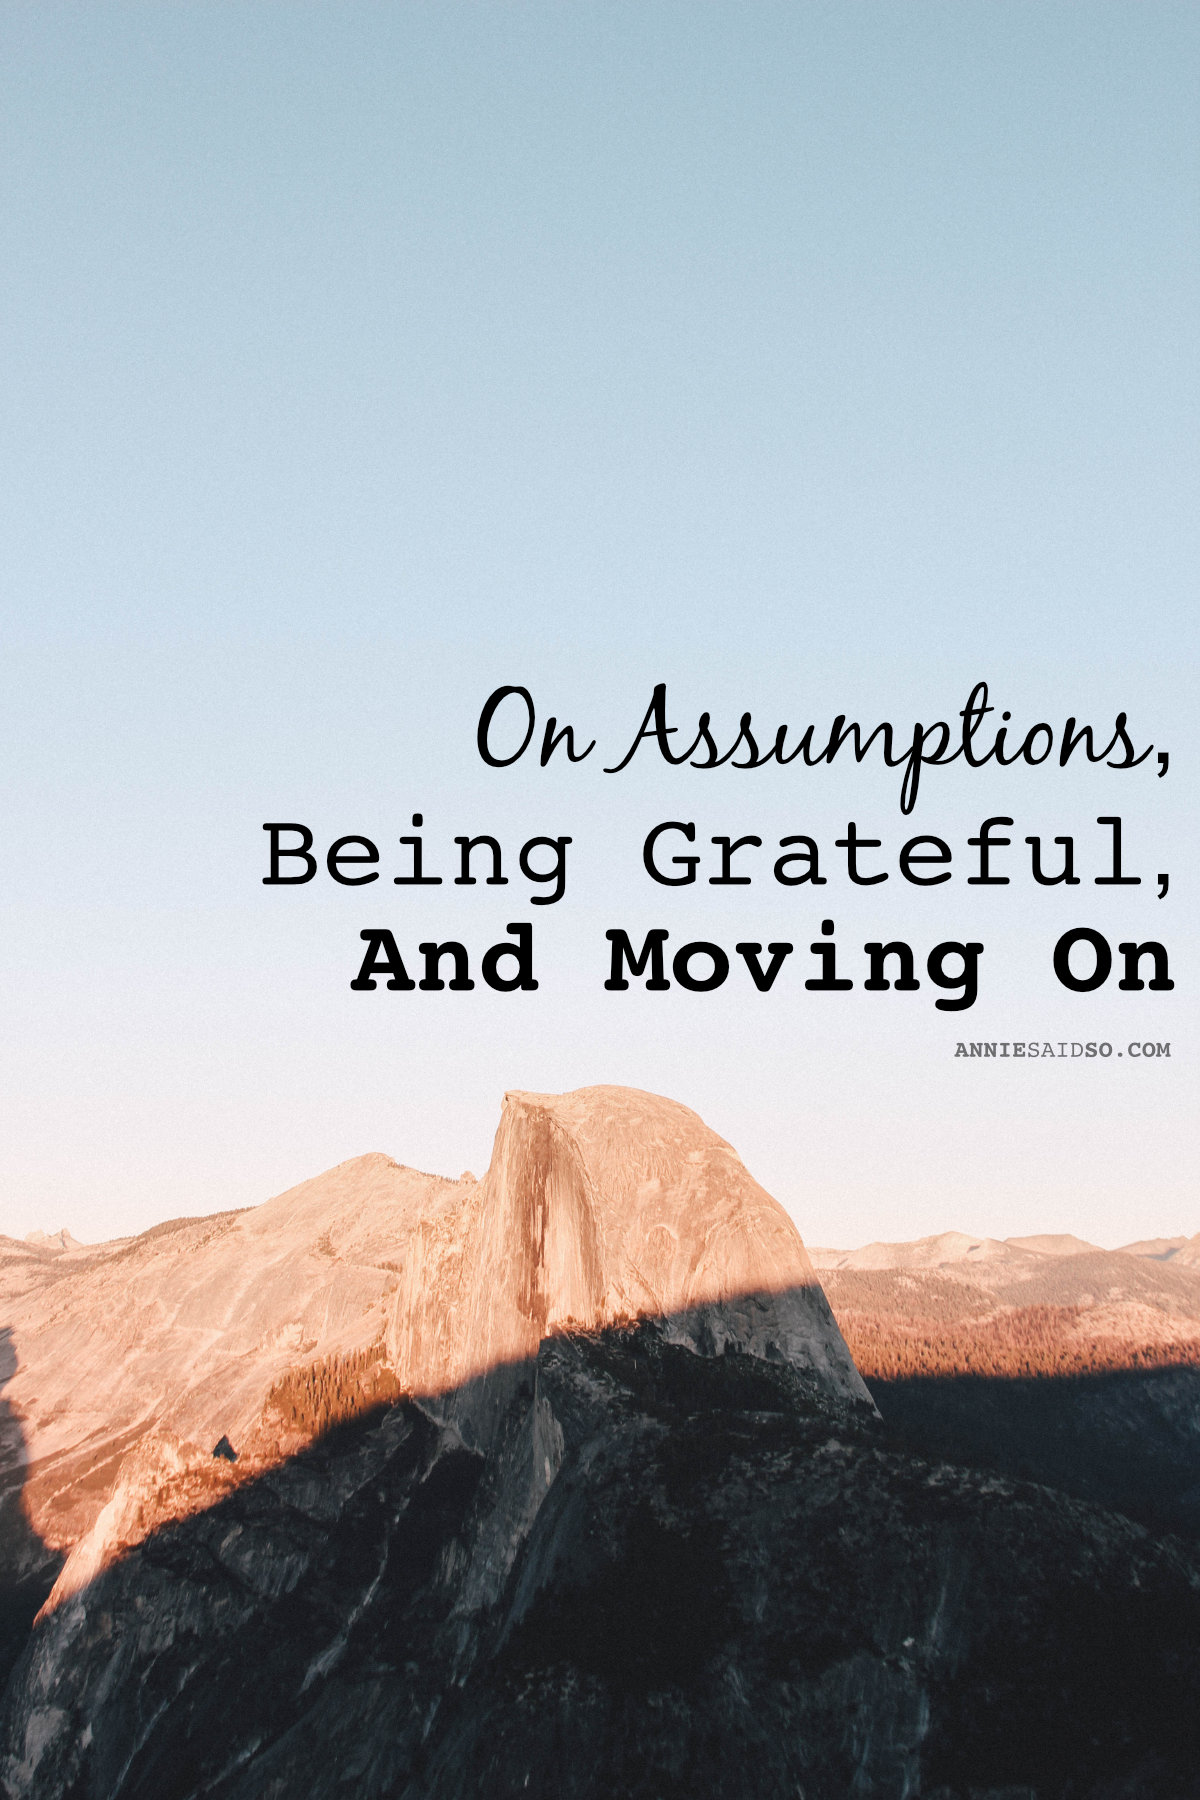 On Assumptions, Being Grateful, And Moving On